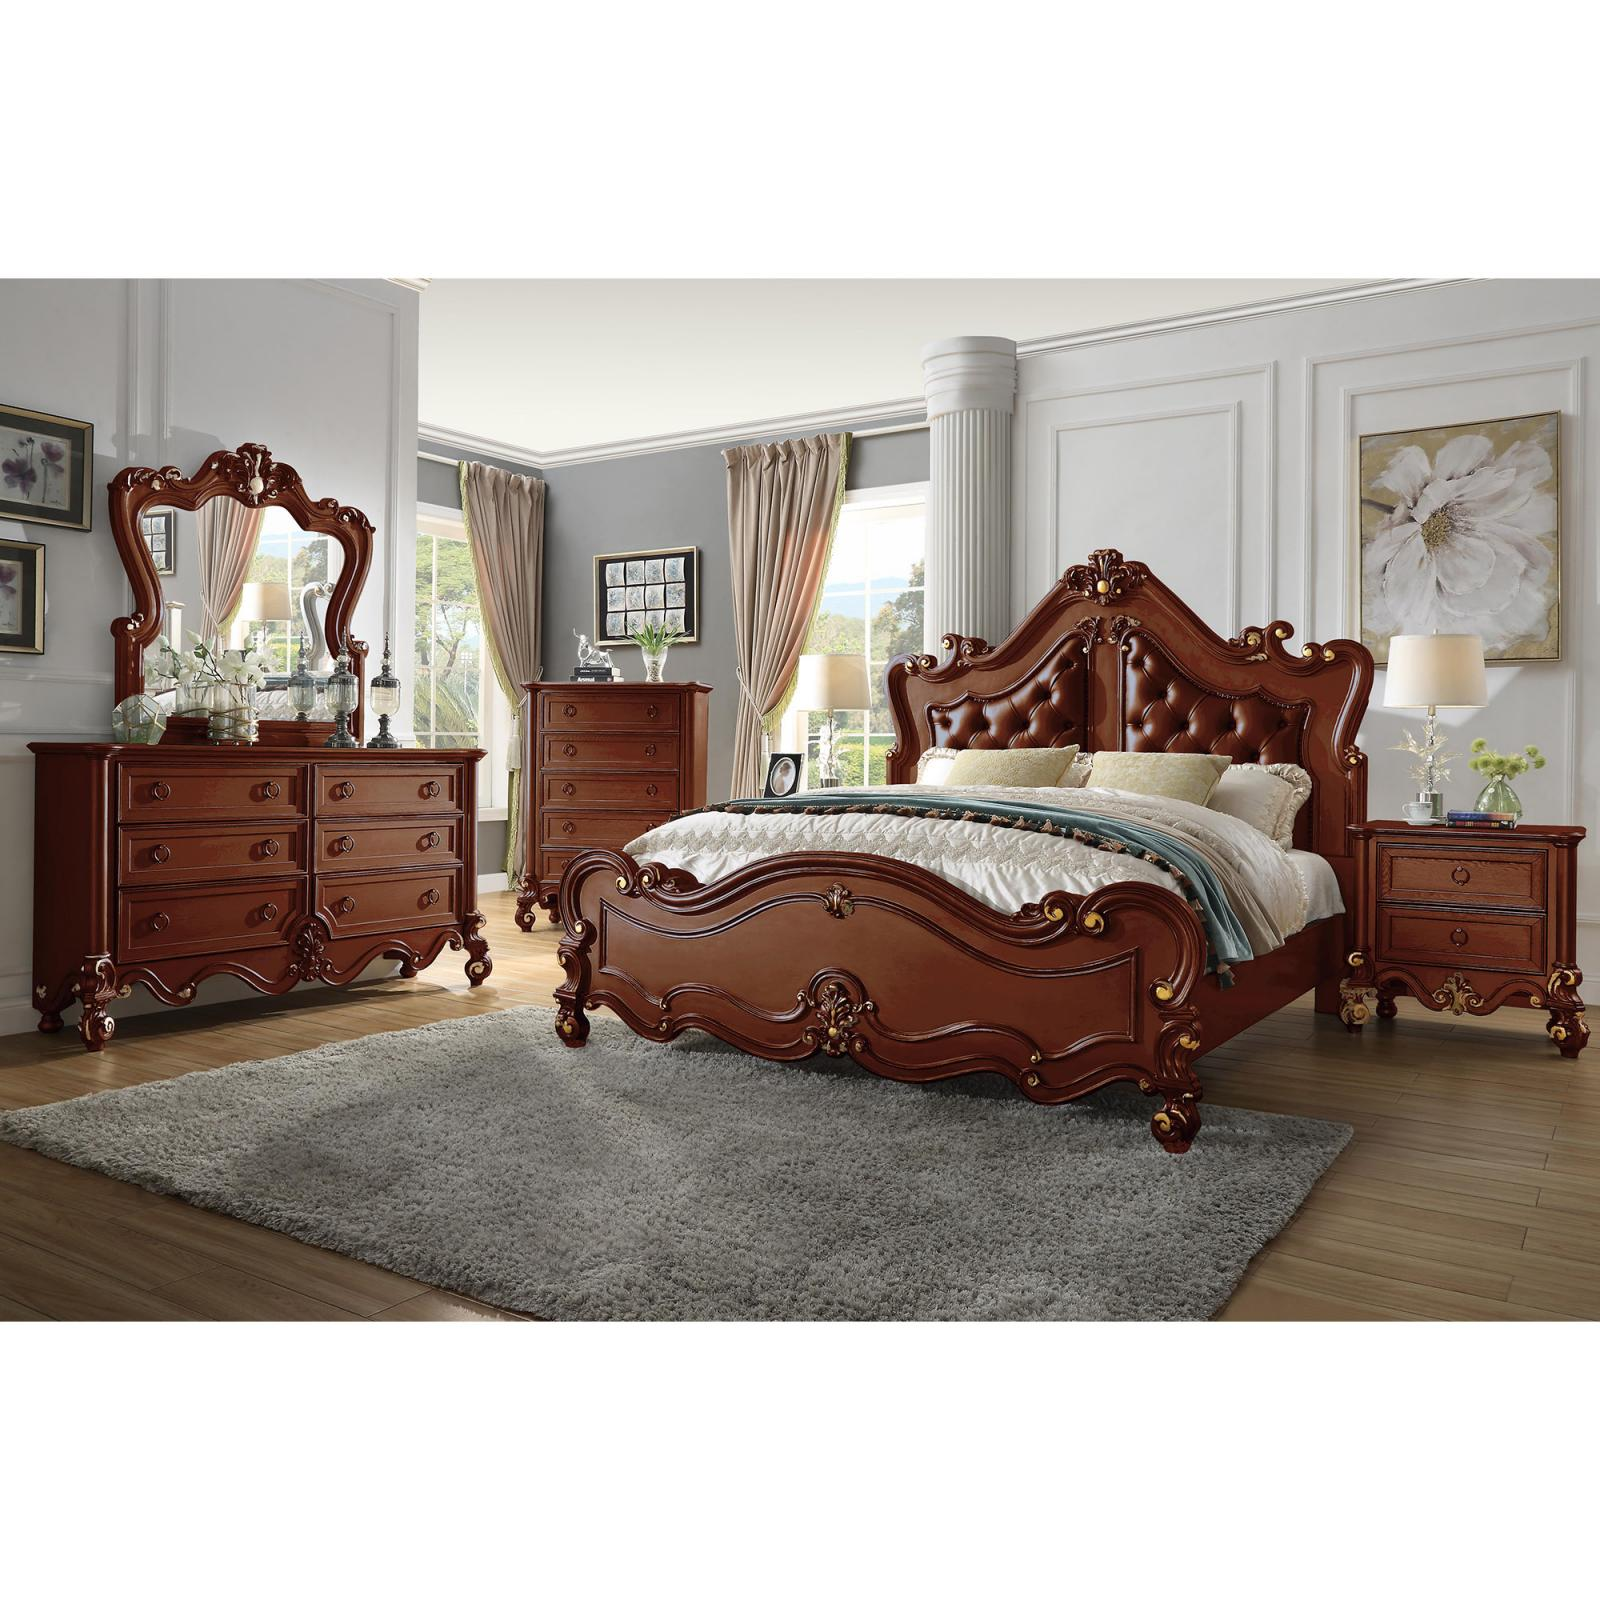 Traditional Gold, Cherry Leather and Wood Panel Bedroom Set 4 pcs HD-999 CHERRY  by Homey Design